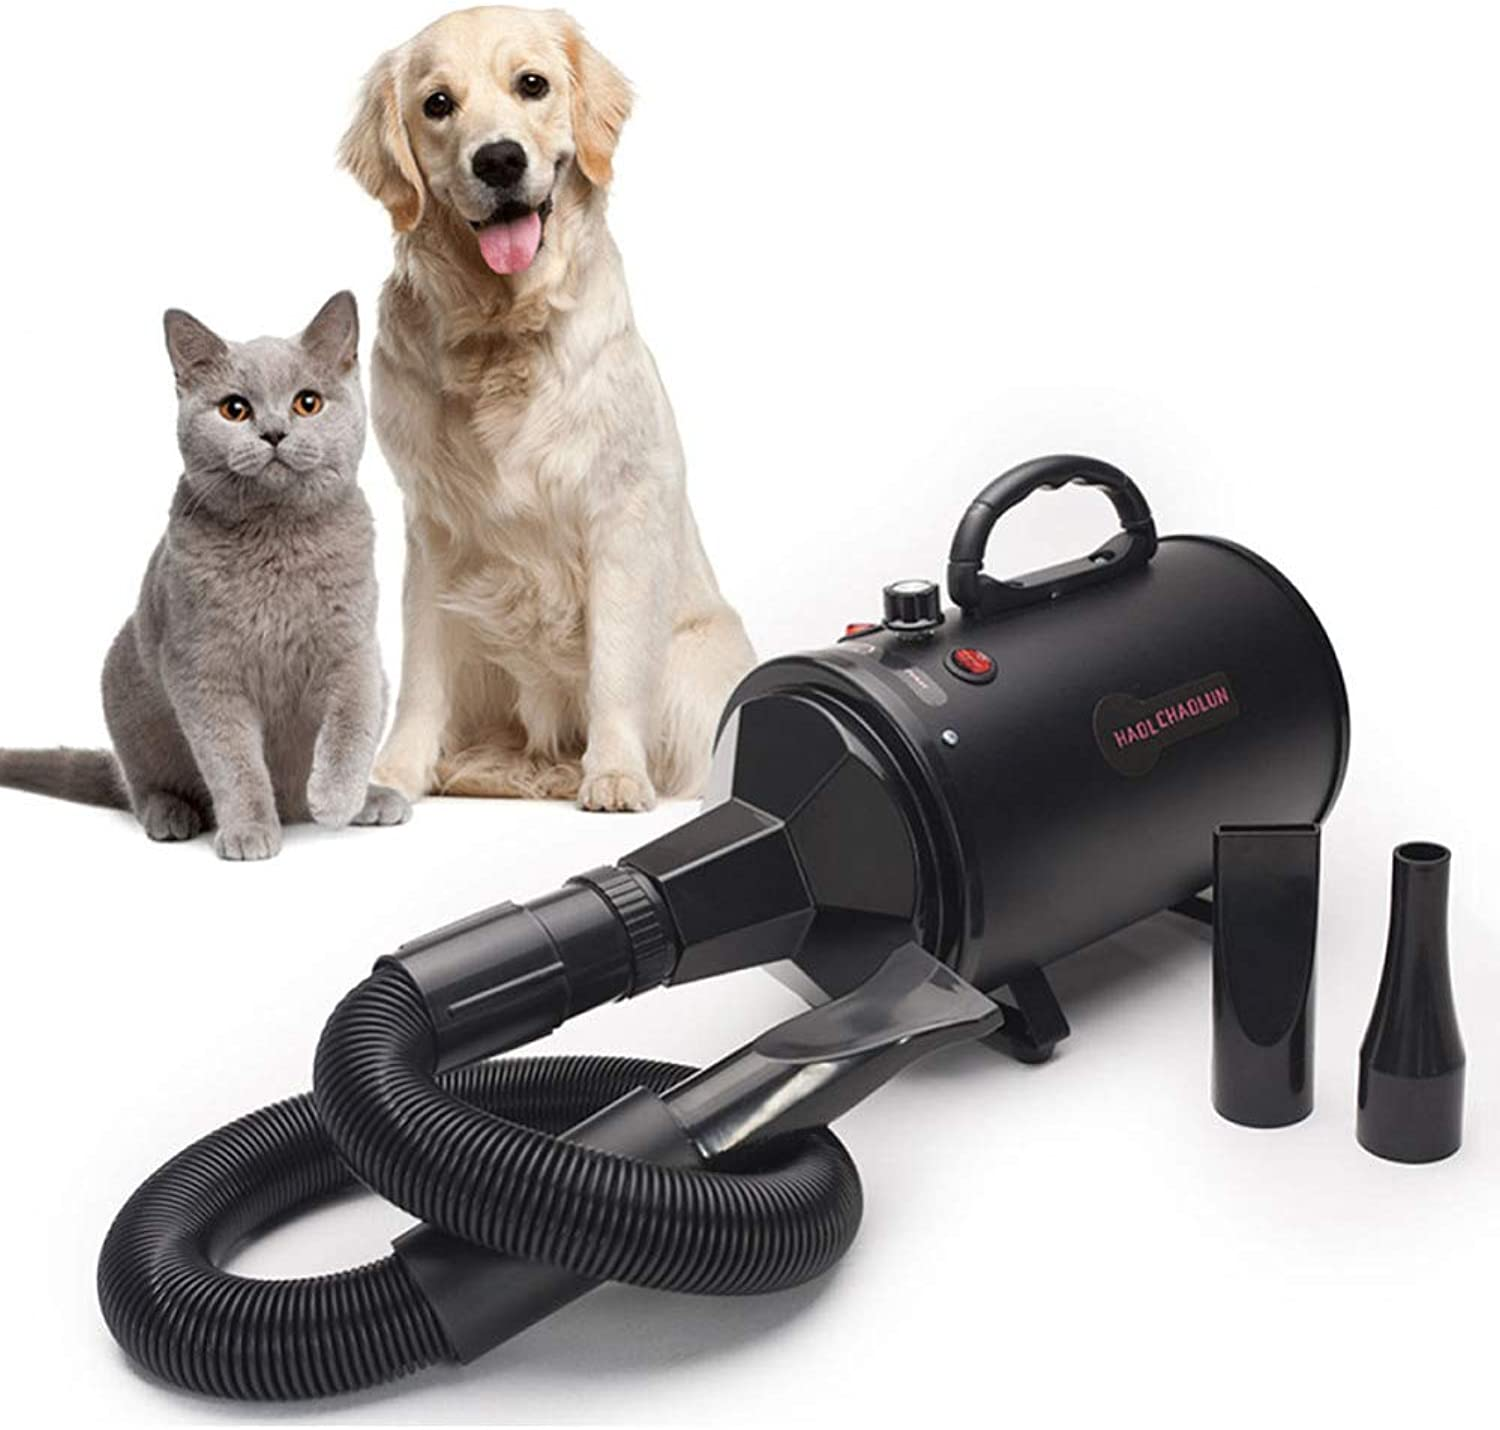 Pet Drye7002000W Low Noise Stepless Speed Adjustable Temperature Blaster Blower 3 Nozzles Flexible Hose Dog Cat Pet Hair Dryer,Black